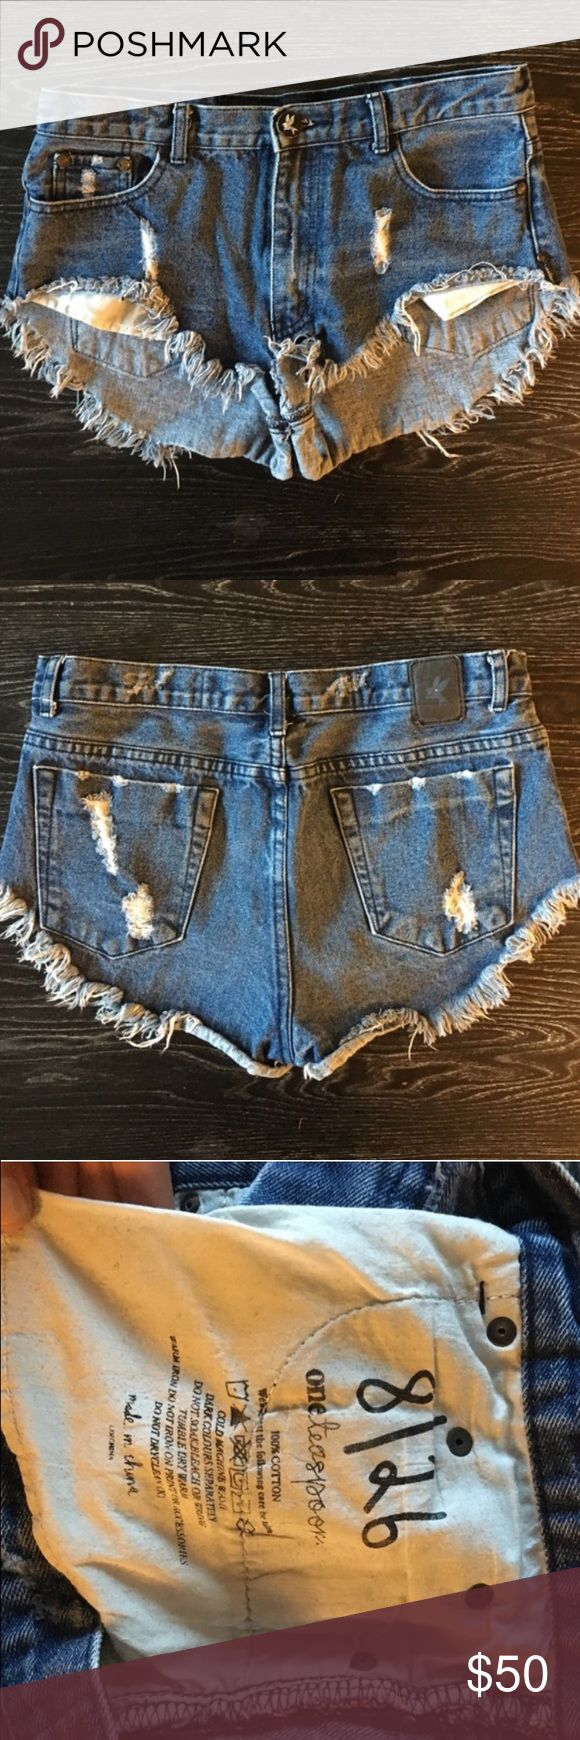 One teaspoon daisy duke shorts The cutest pair of shorts!!!! The fit is super flattering and very comfy. Bought from another posher and they don't fit One Teaspoon Shorts Jean Shorts